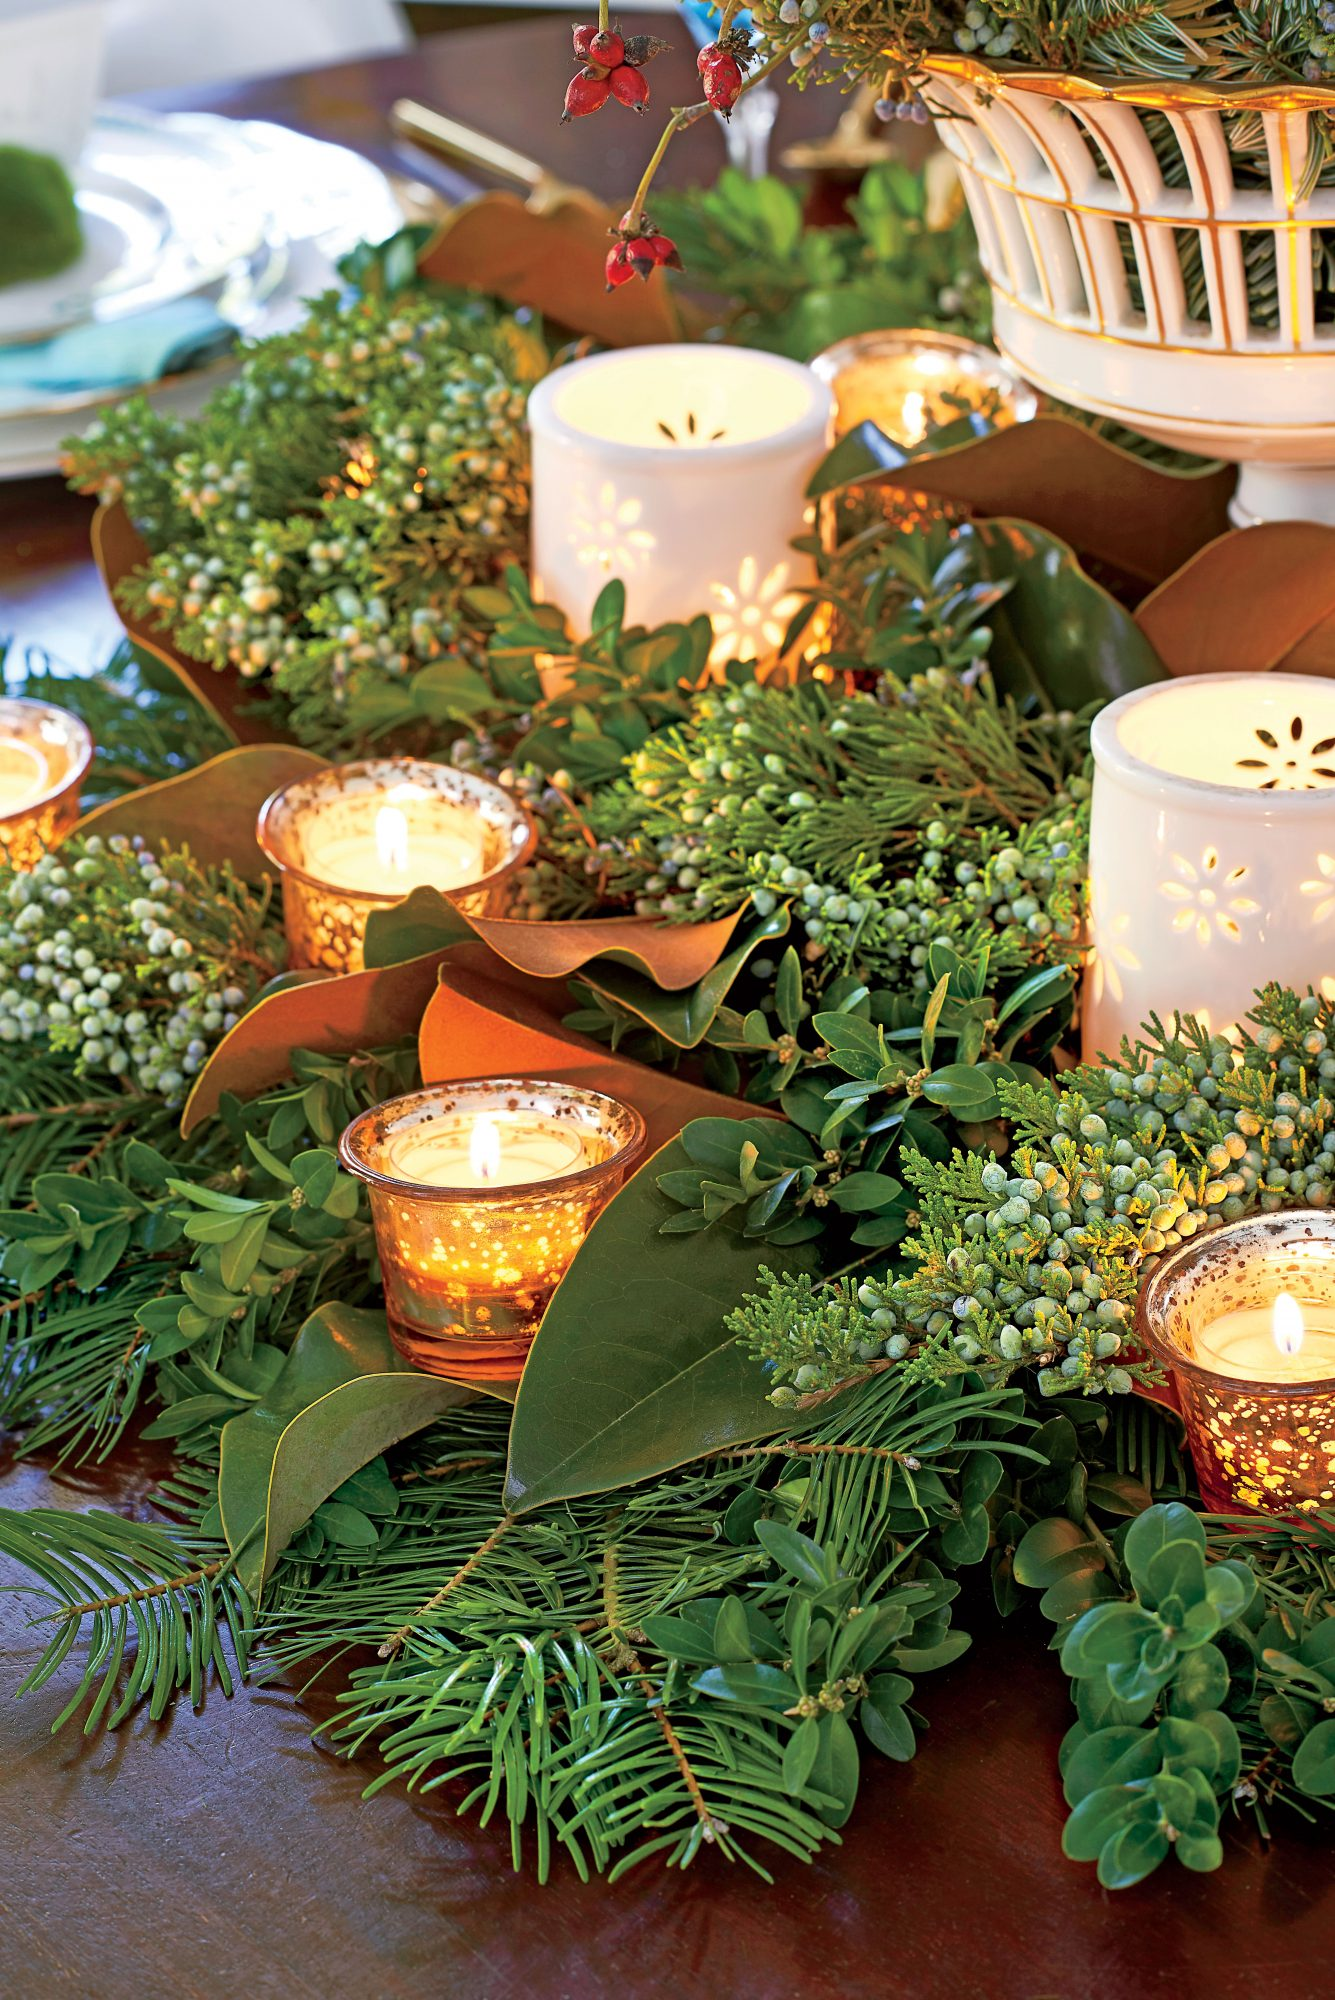 Hillenemeyer Christmas Dining Room Centerpiece with Candles